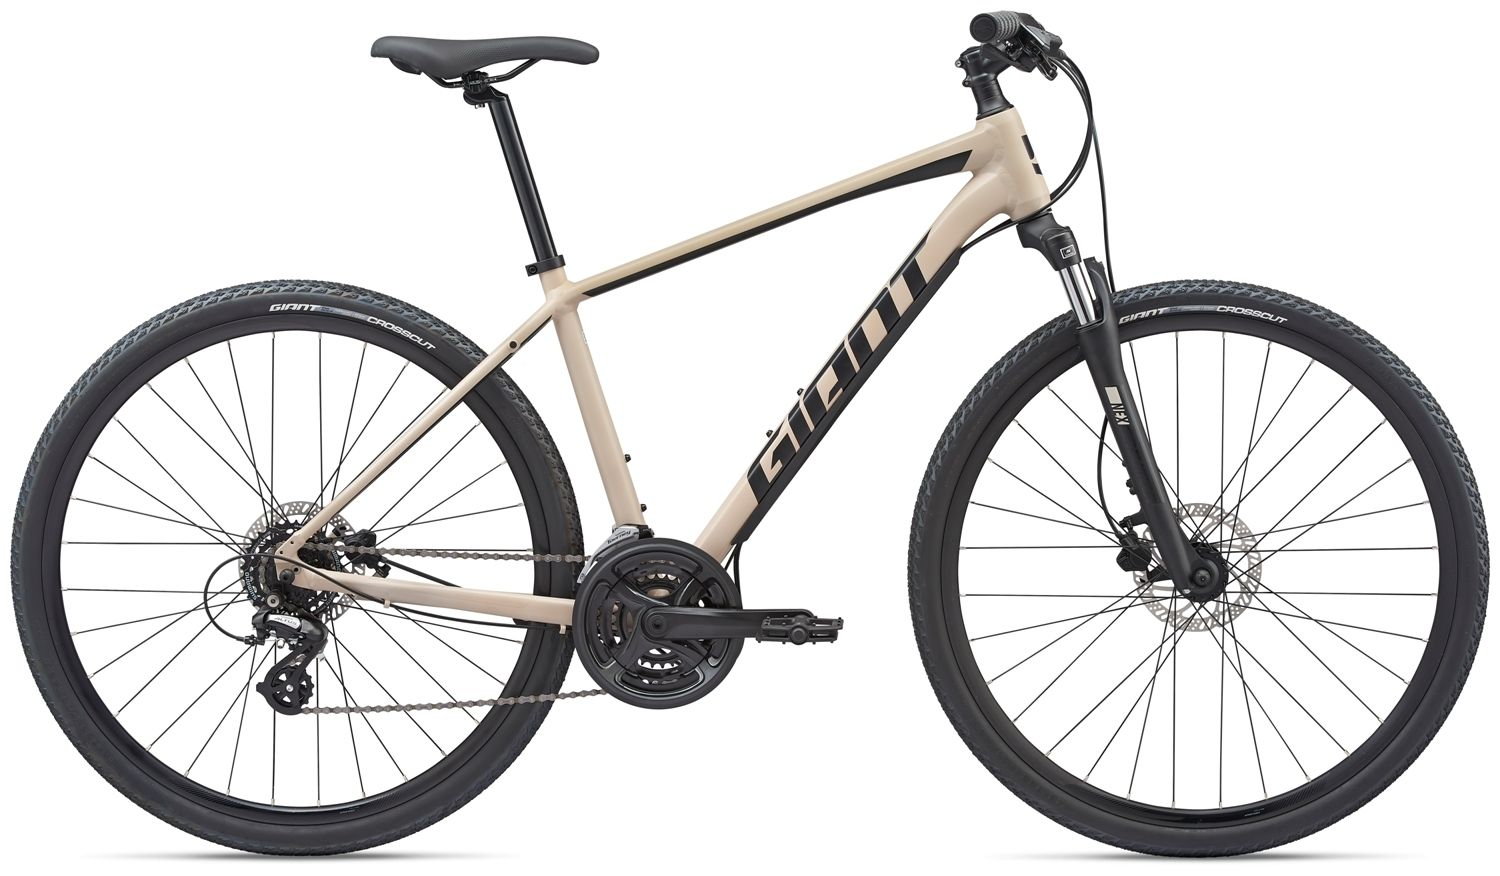 Giant Roam 4 Hybrid Bike A Brand New Bike For Giant S 2020 Men S